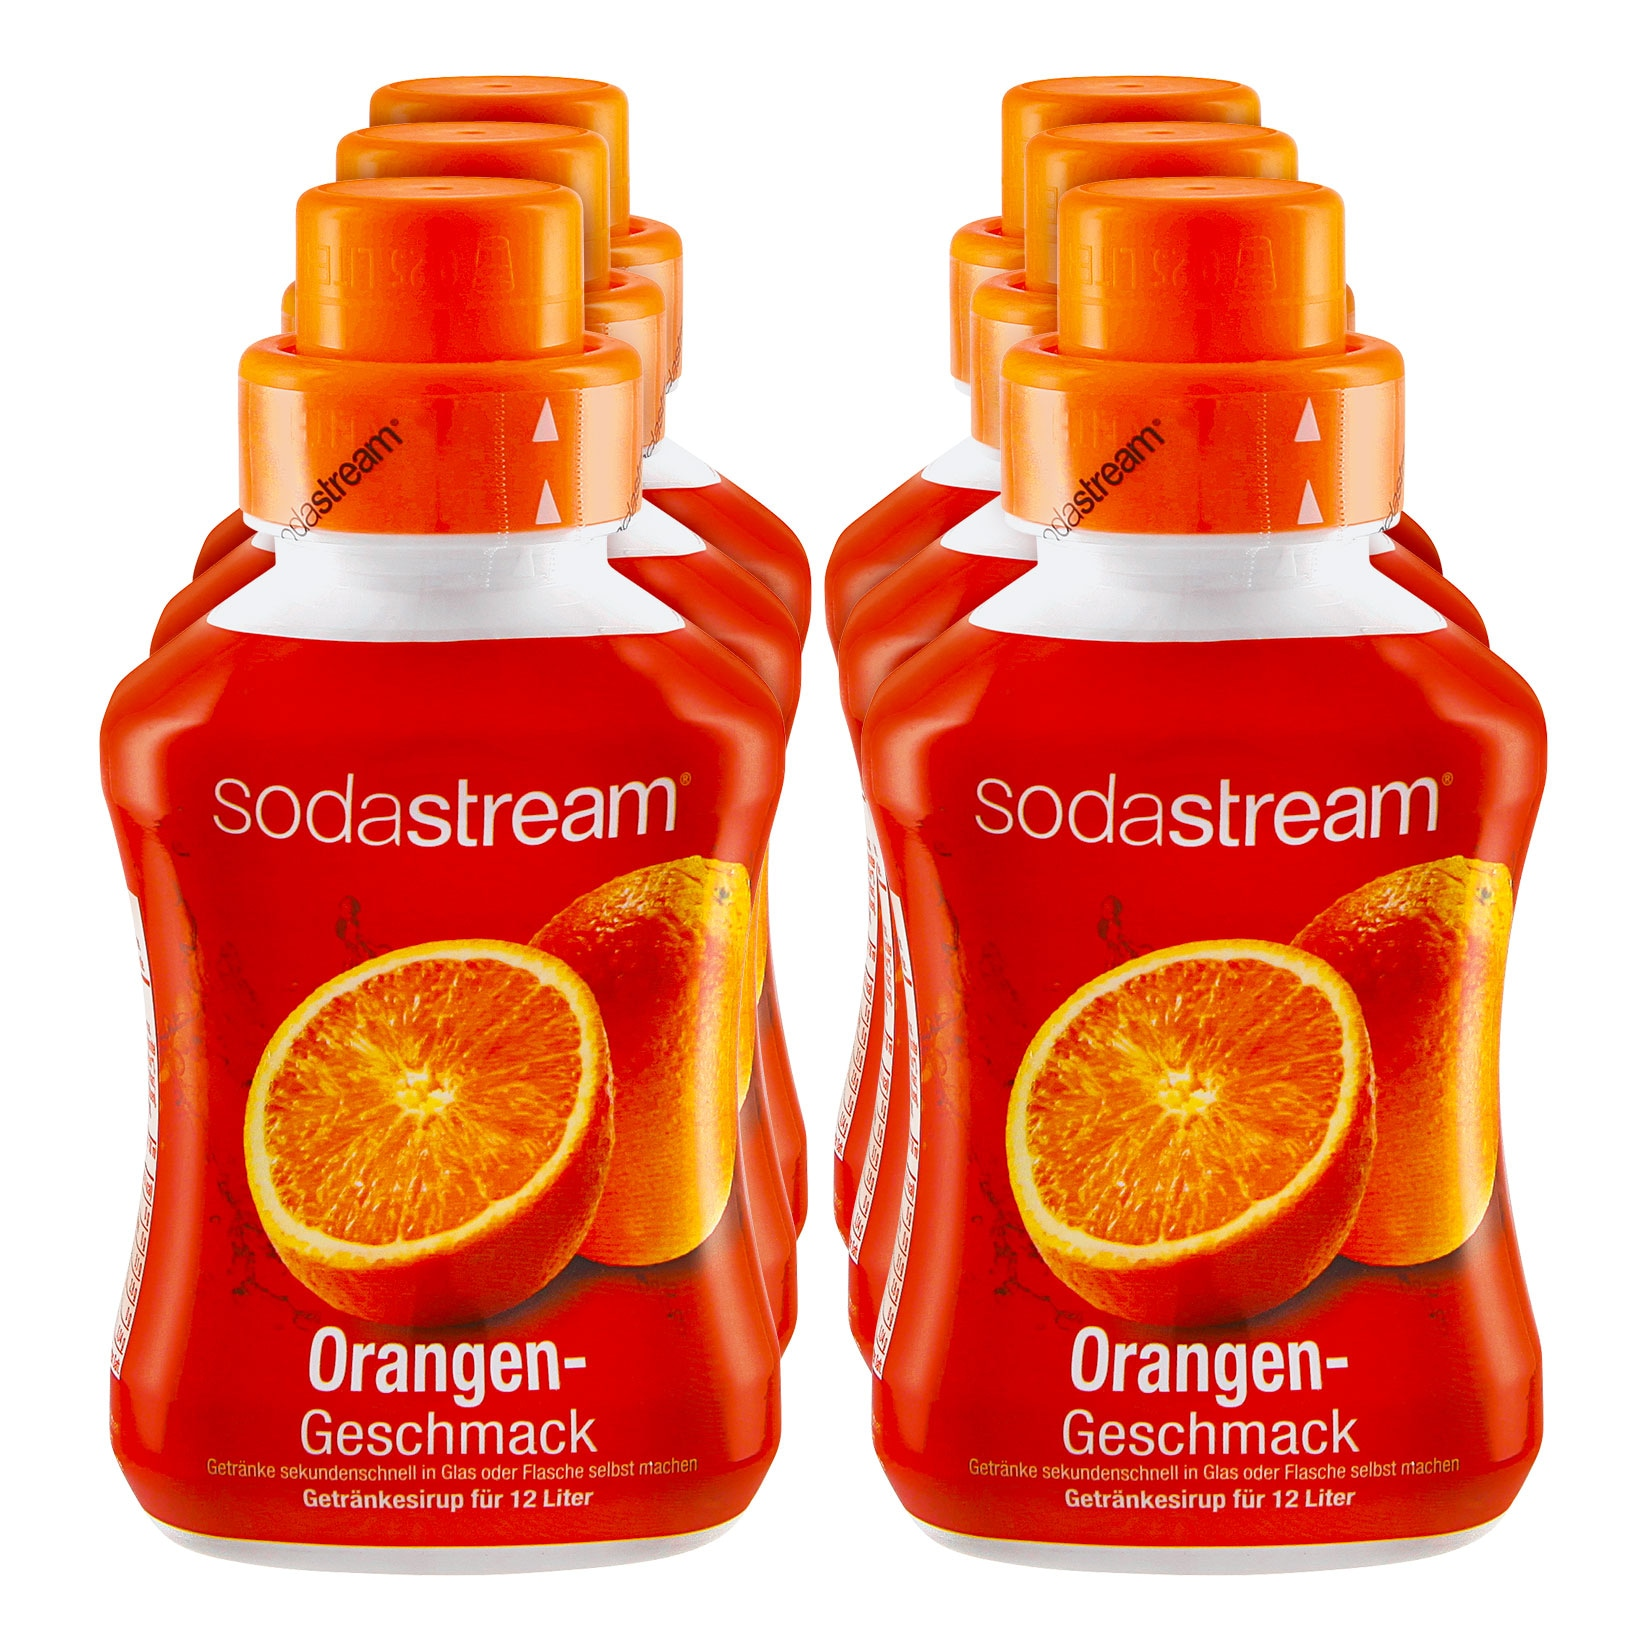 Sodastream Sirup Orange 0,5 Liter, 6er Pack von Sodastream